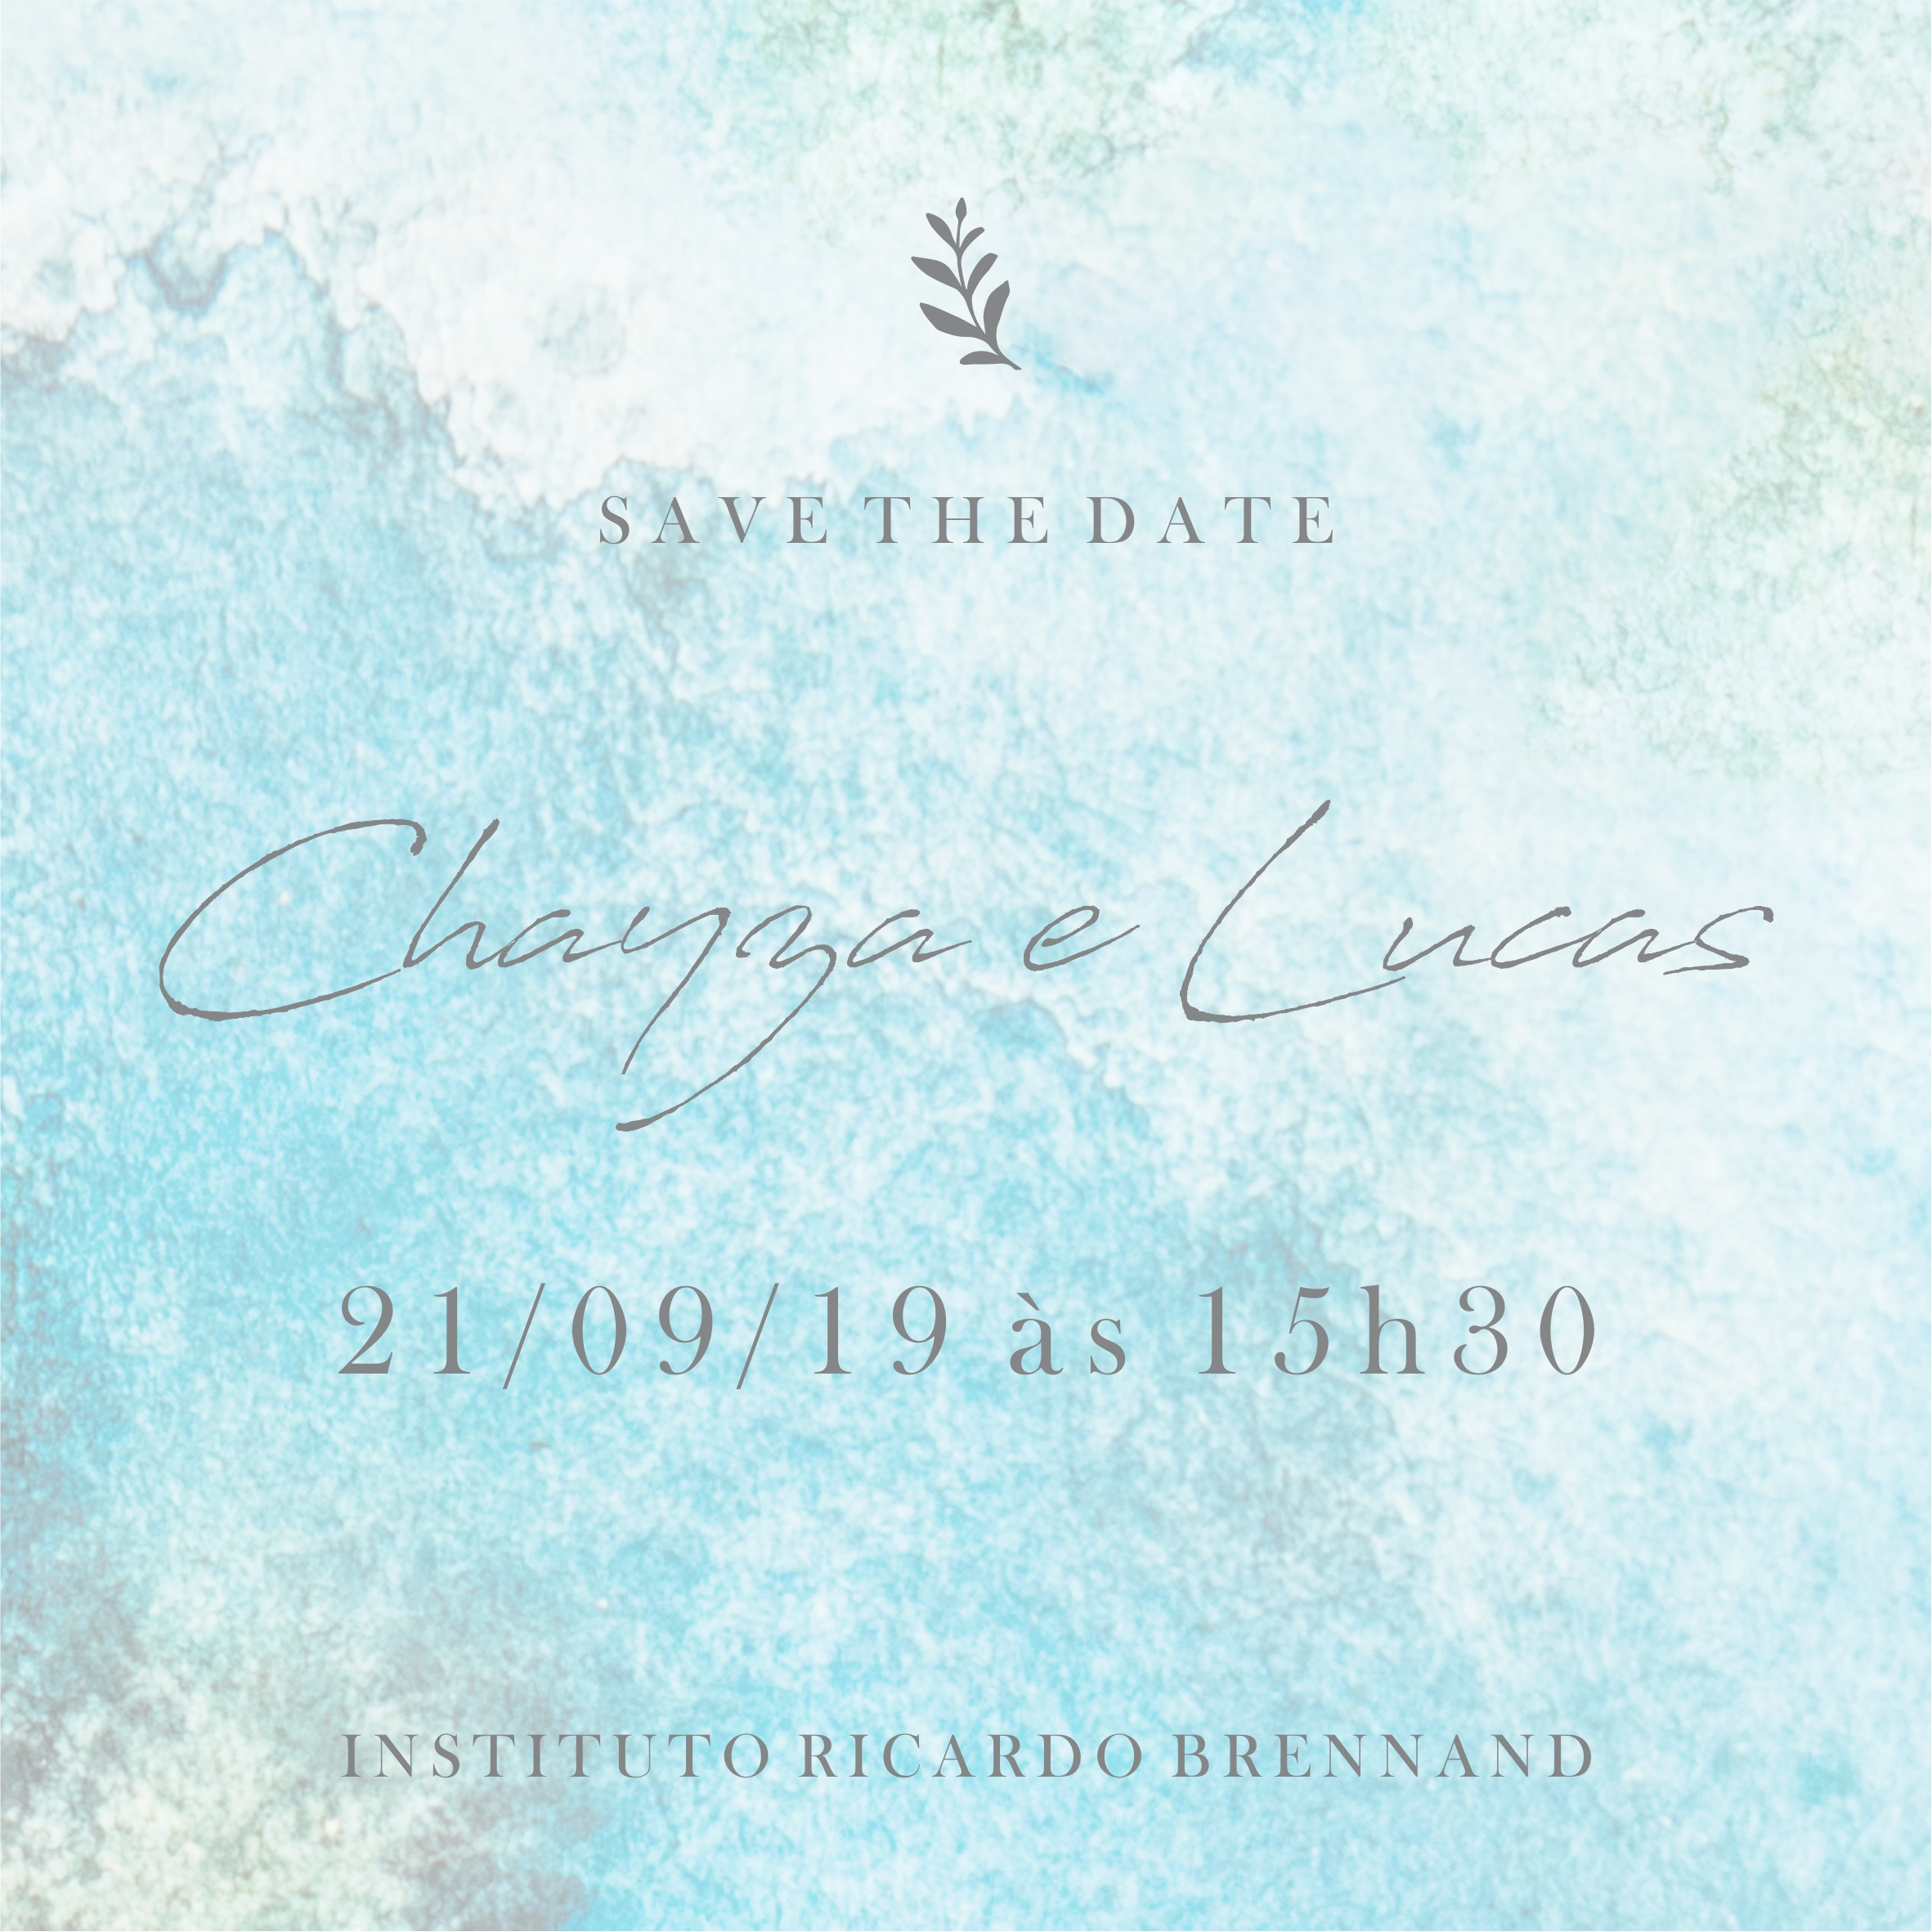 Save the date Chayza e Lucas -